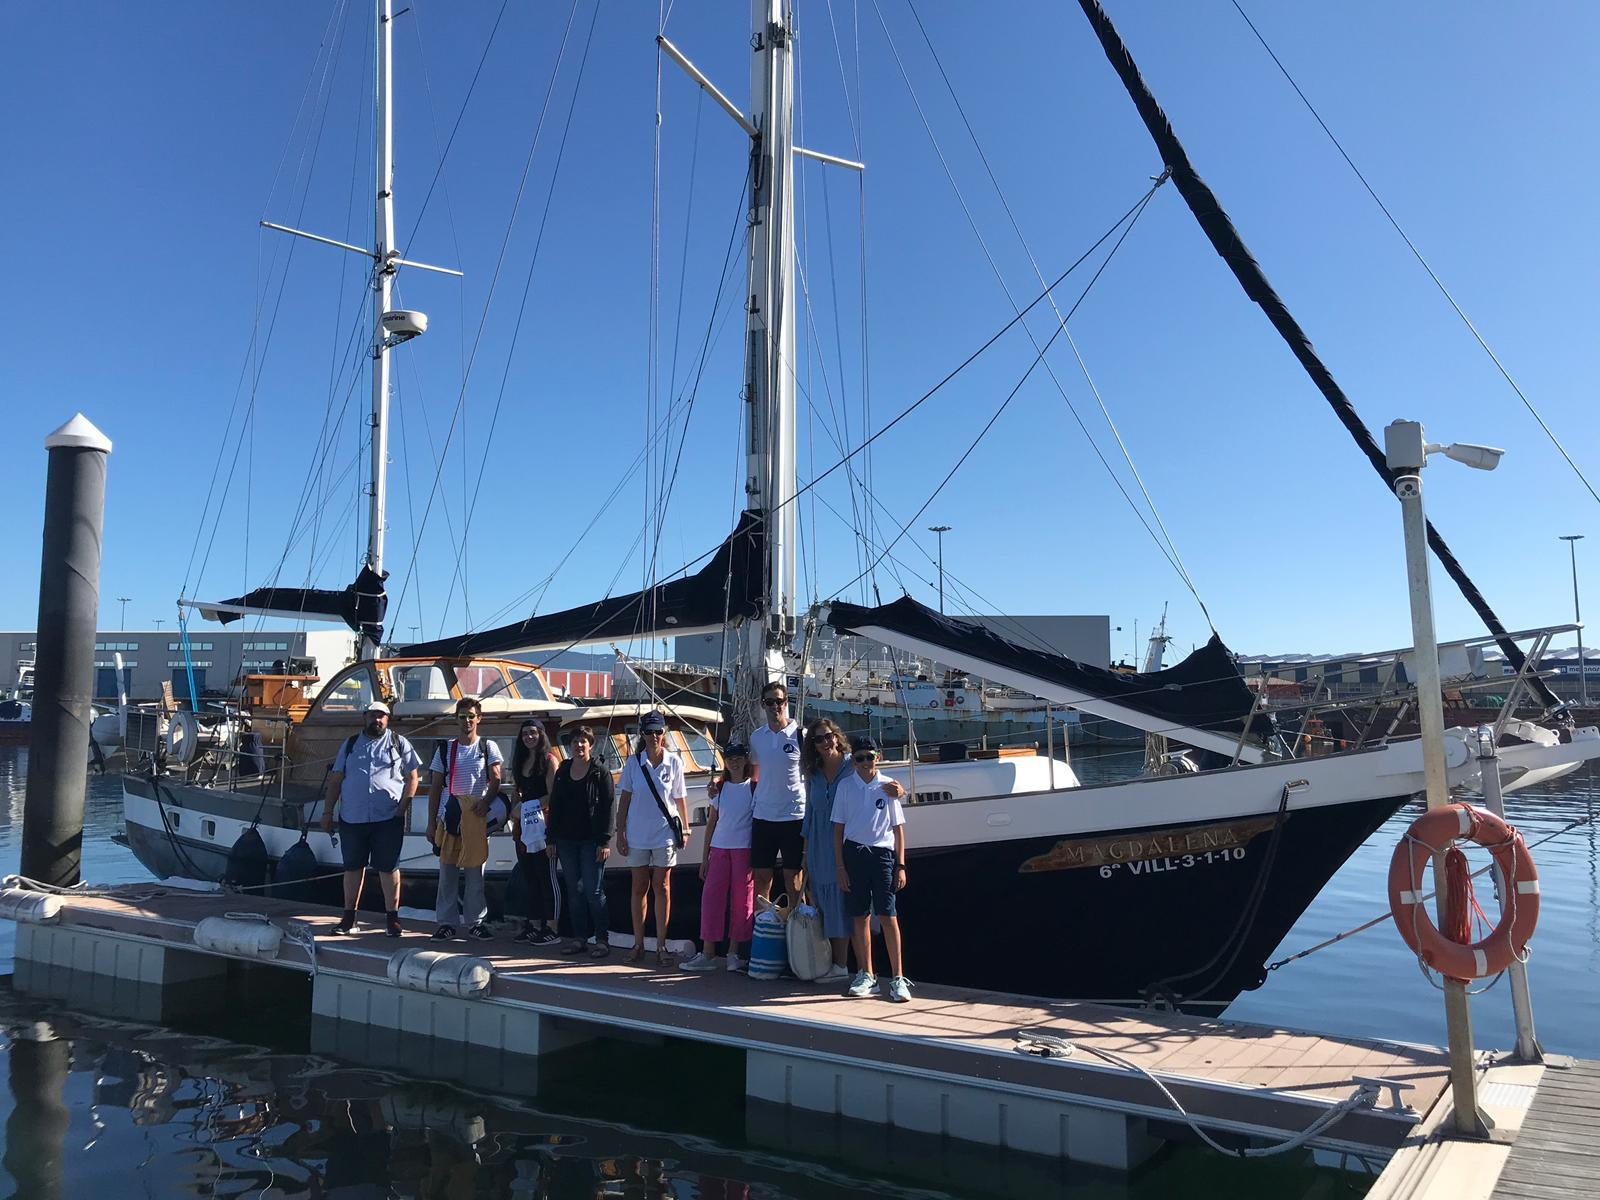 The Xunta promotes nautical crossings to travel the Camino de Santiago by sea from five Galician ports